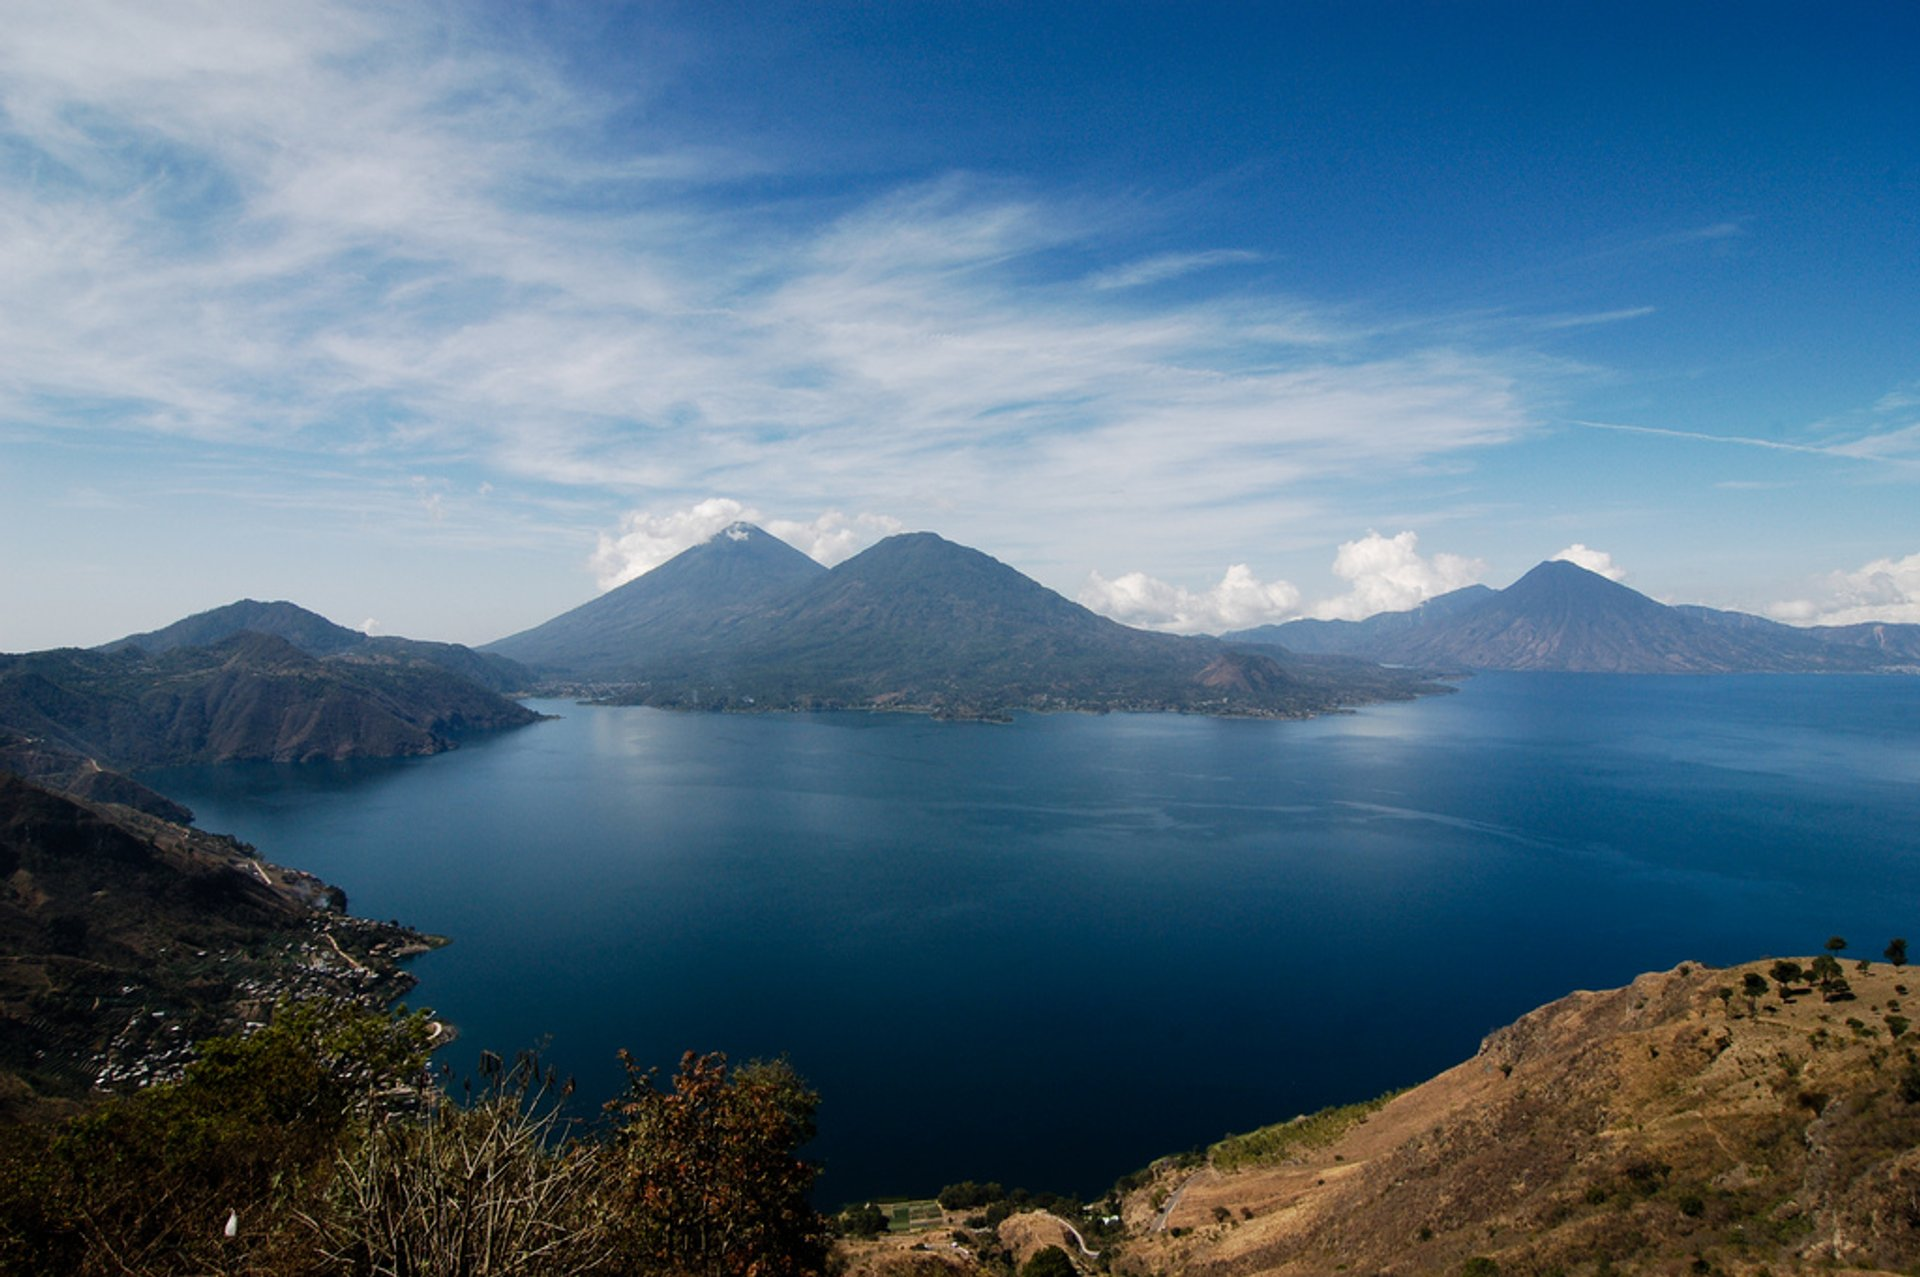 Lake Atitlán in Guatemala 2020 - Best Time